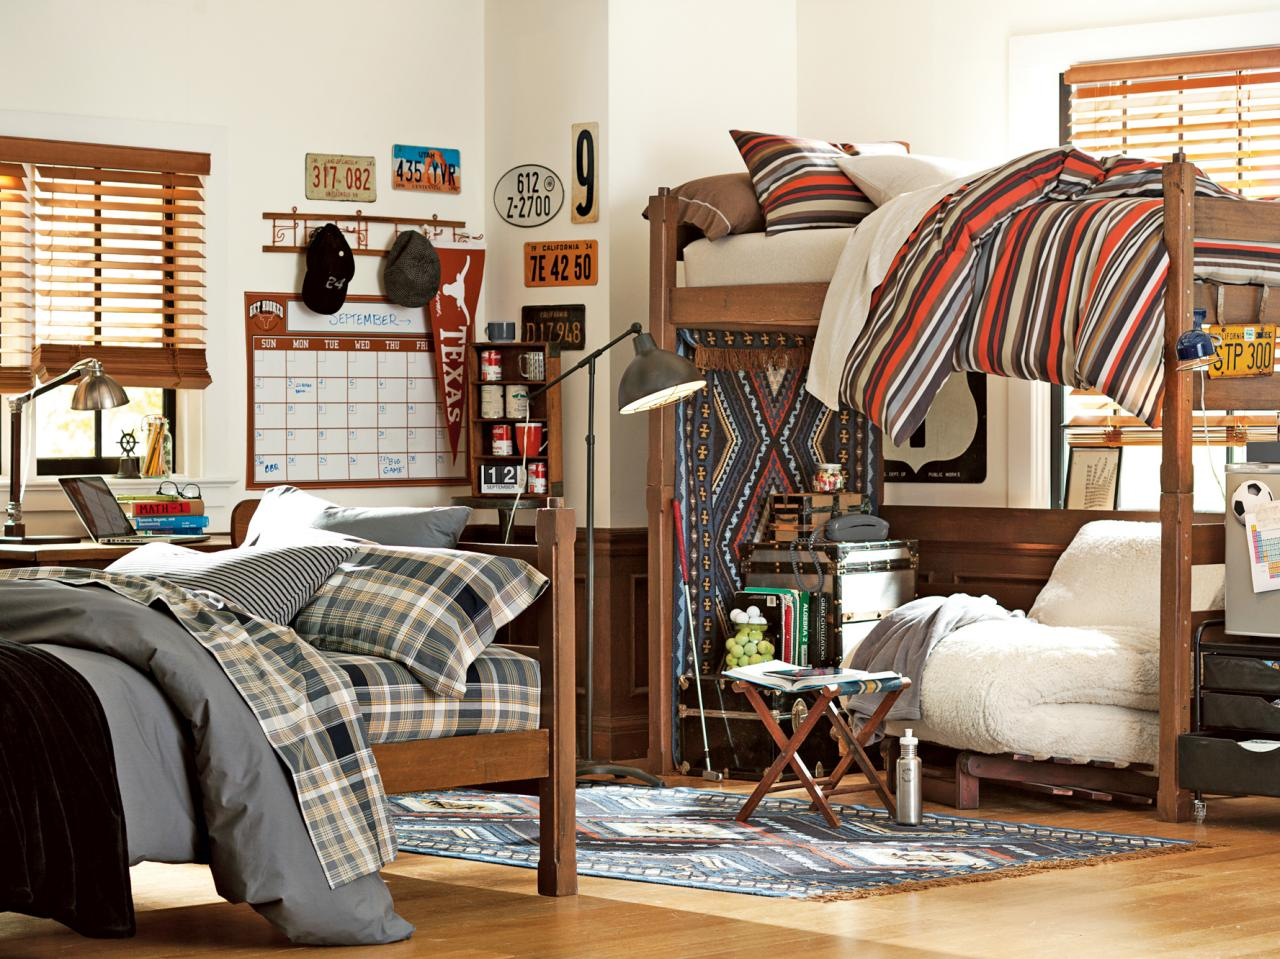 Decorating Ideas > Dorm Room Storage, Seating, And Layout Checklist  HGTV ~ 234908_Dorm Room Style Ideas